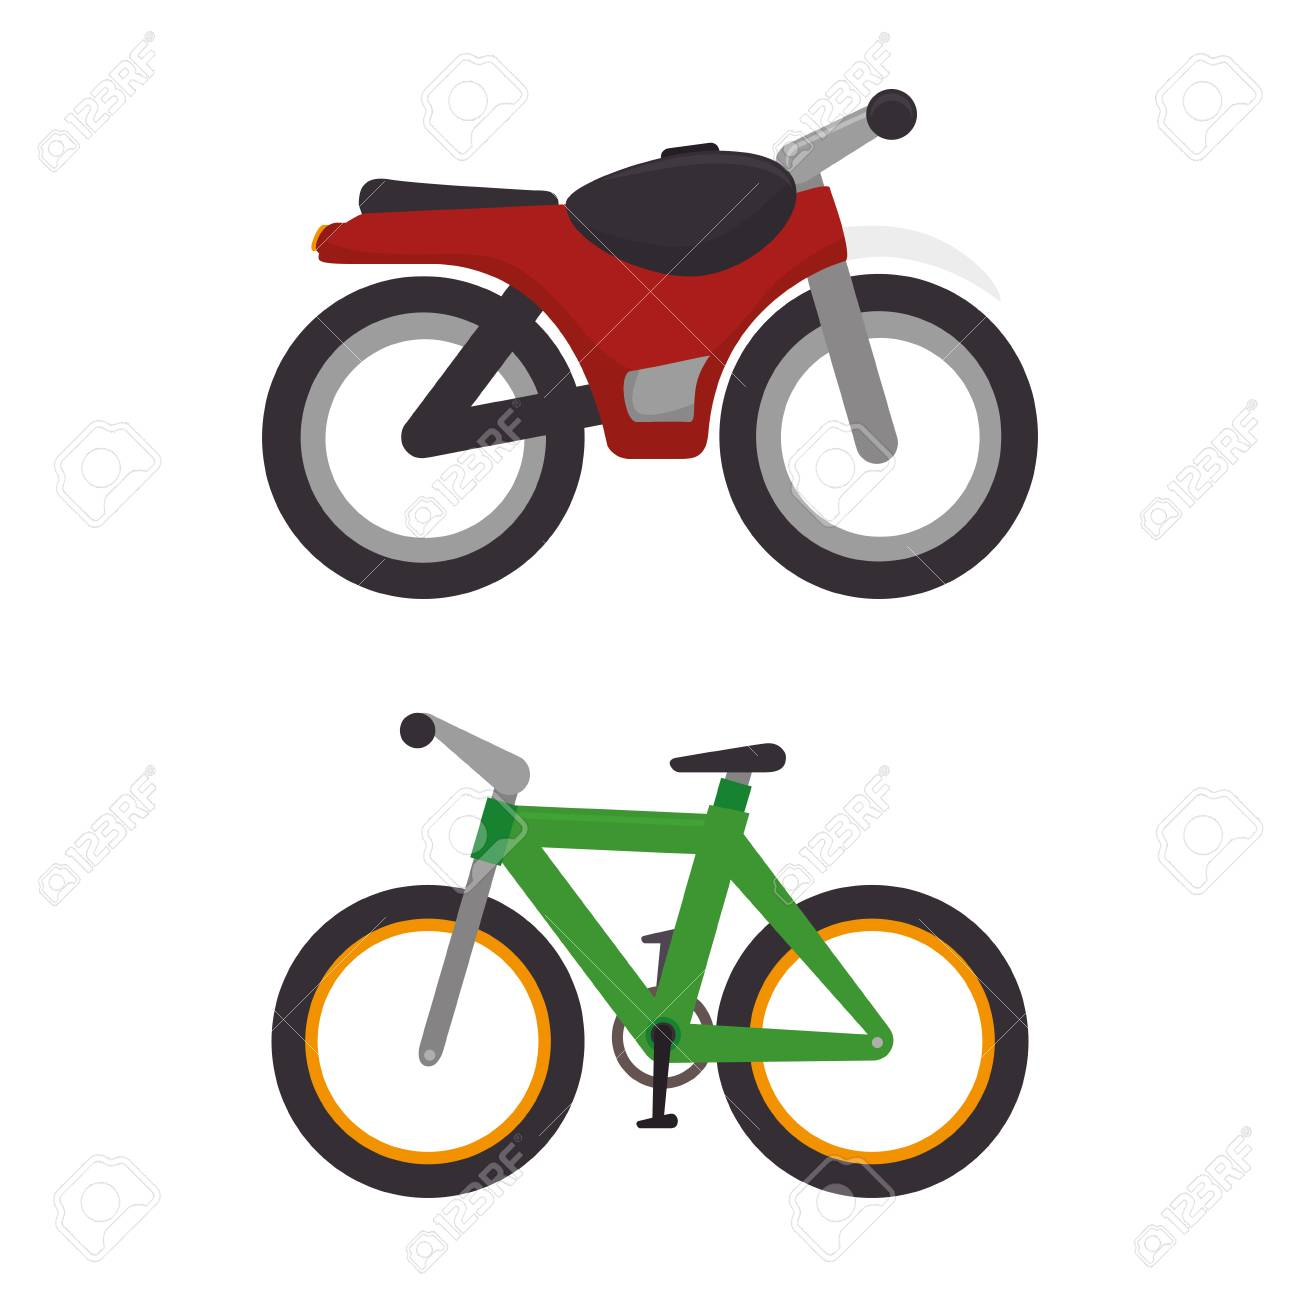 means of transport icons vector illustration design - 72505549